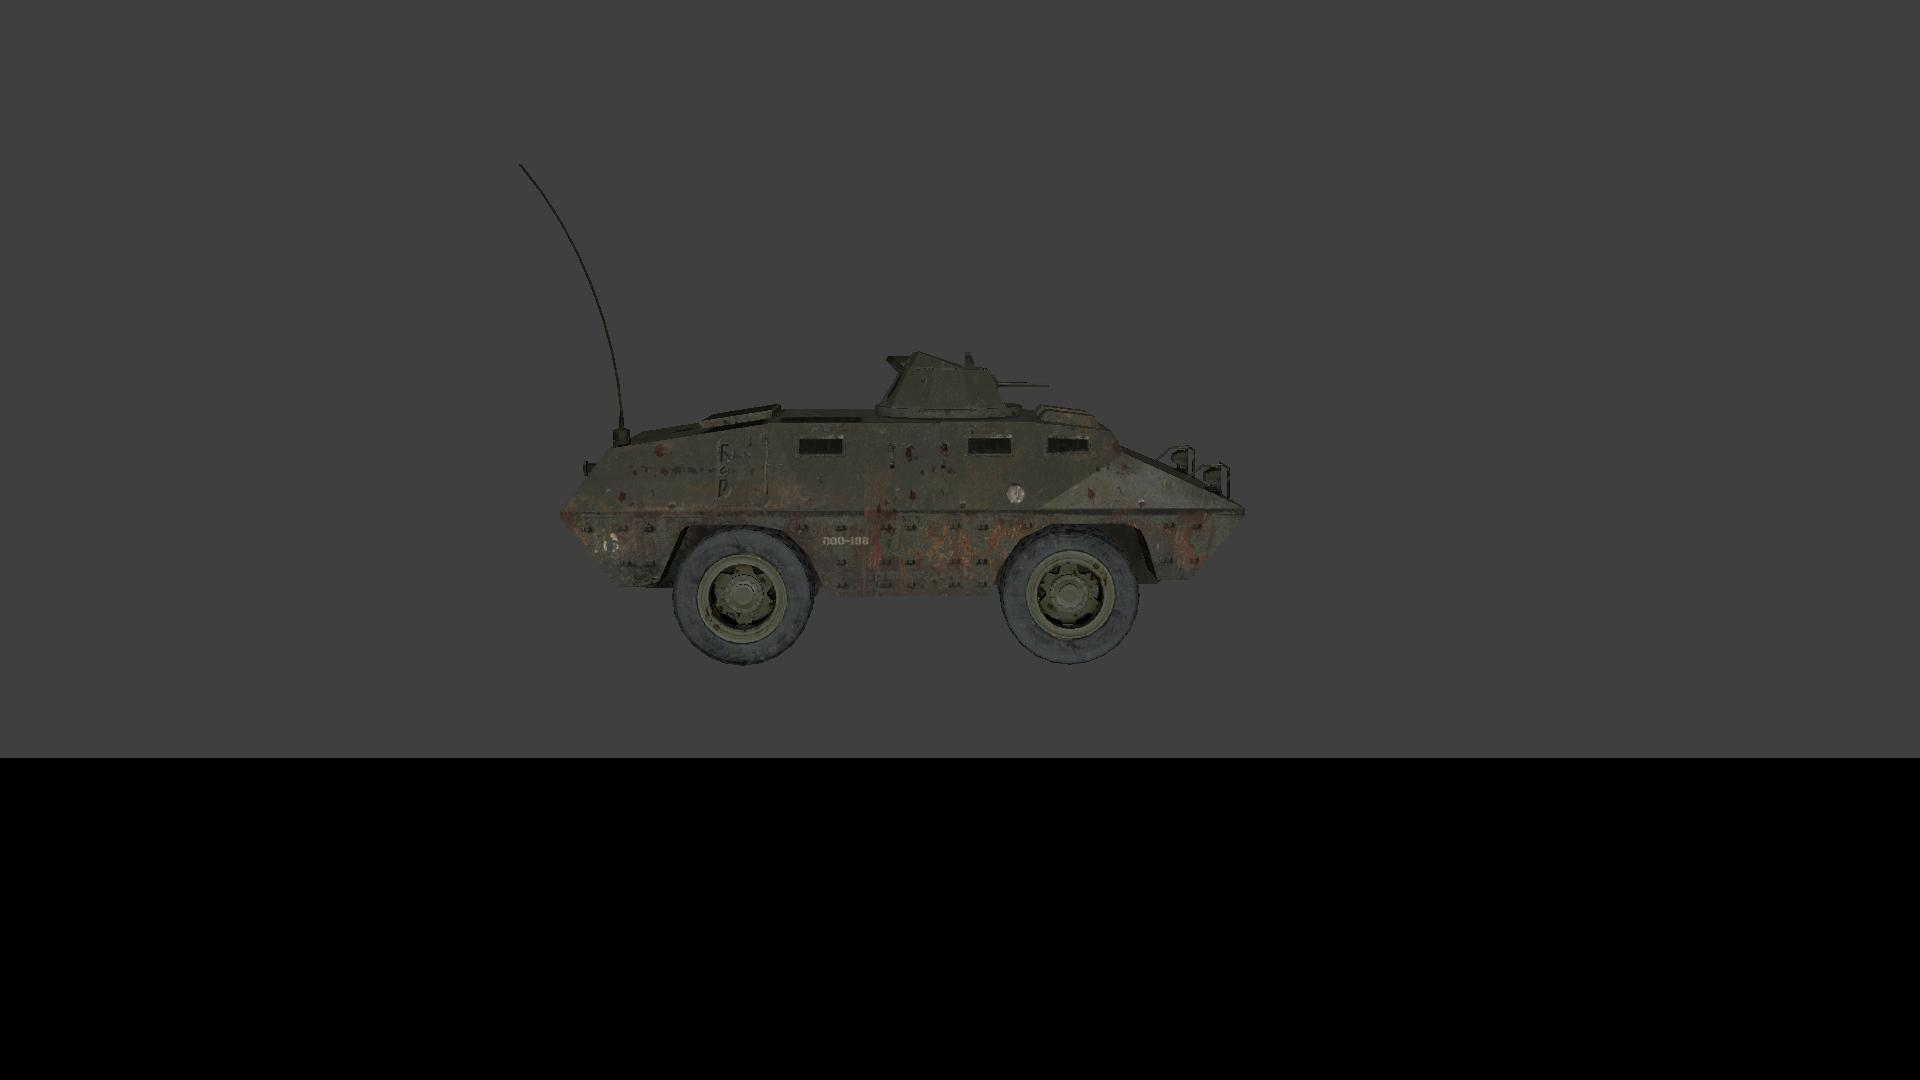 M113 APC - The Ontario Regiment RCAC Museum Collection - YouTube